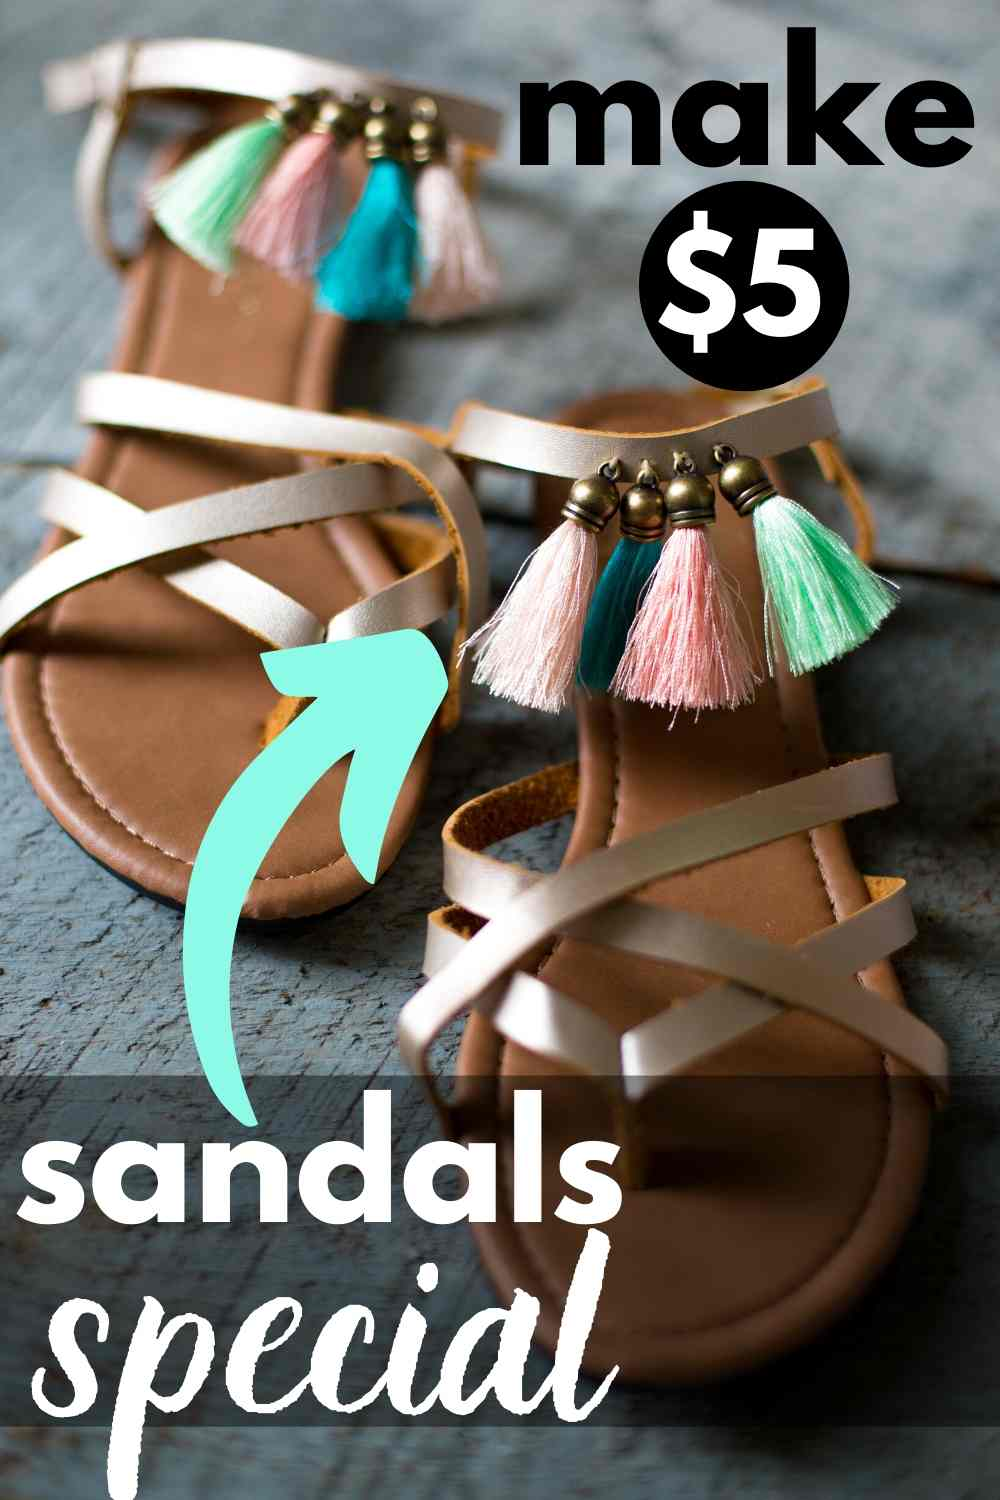 An easy way to make some $5 sandals special! Add some fringe! Here's how it's done.